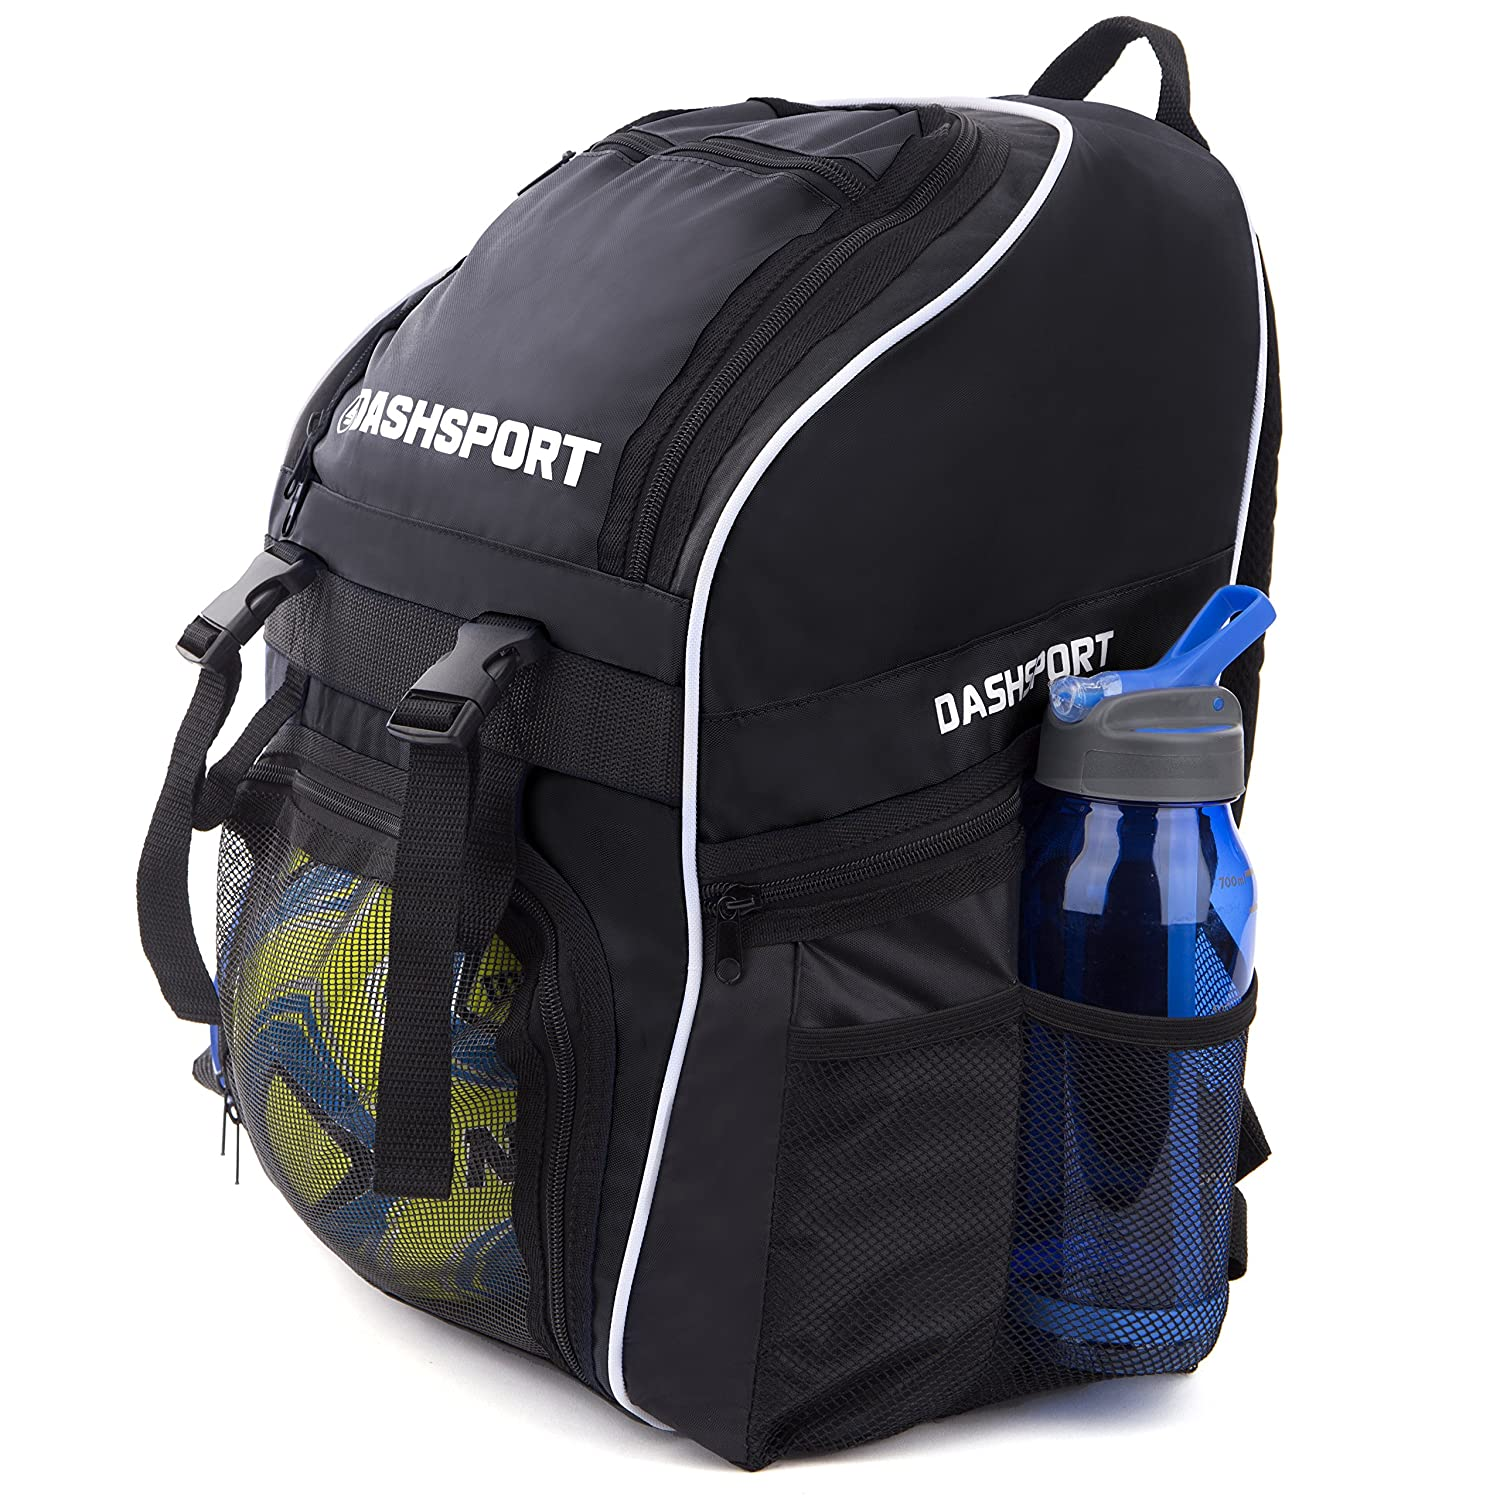 6d81ef107677 backpack with basketball holder cheap   OFF45% The Largest Catalog ...